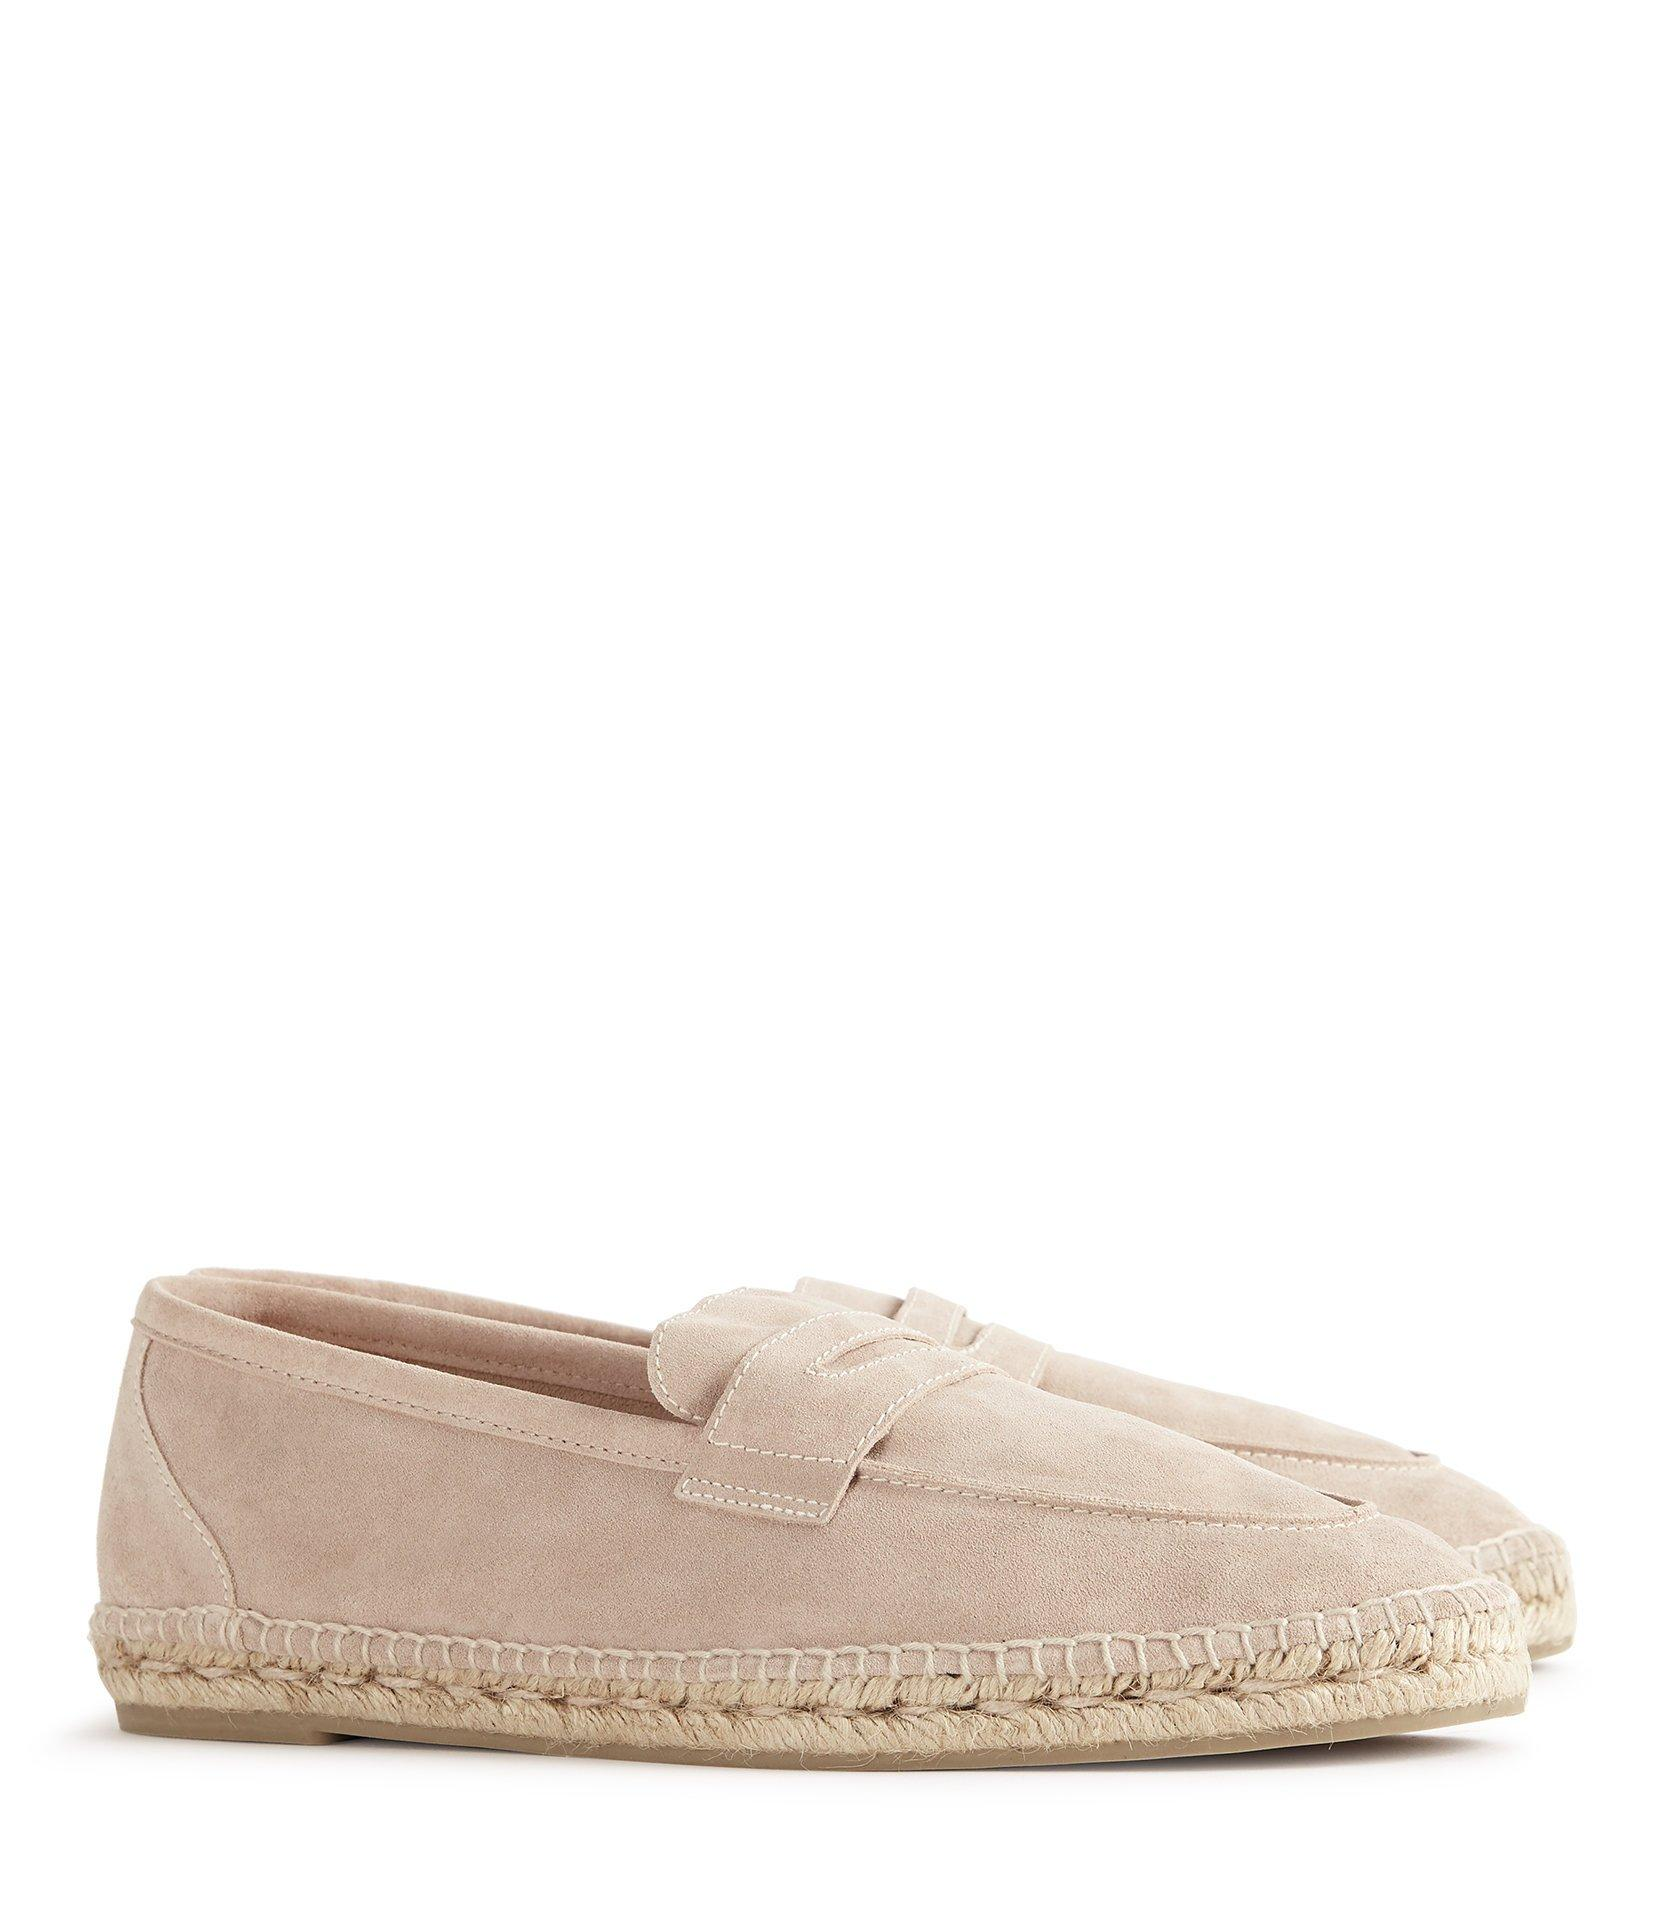 2a0d61ad75c Reiss - Natural Nacho - Suede Penny Espadrille for Men - Lyst. View  fullscreen